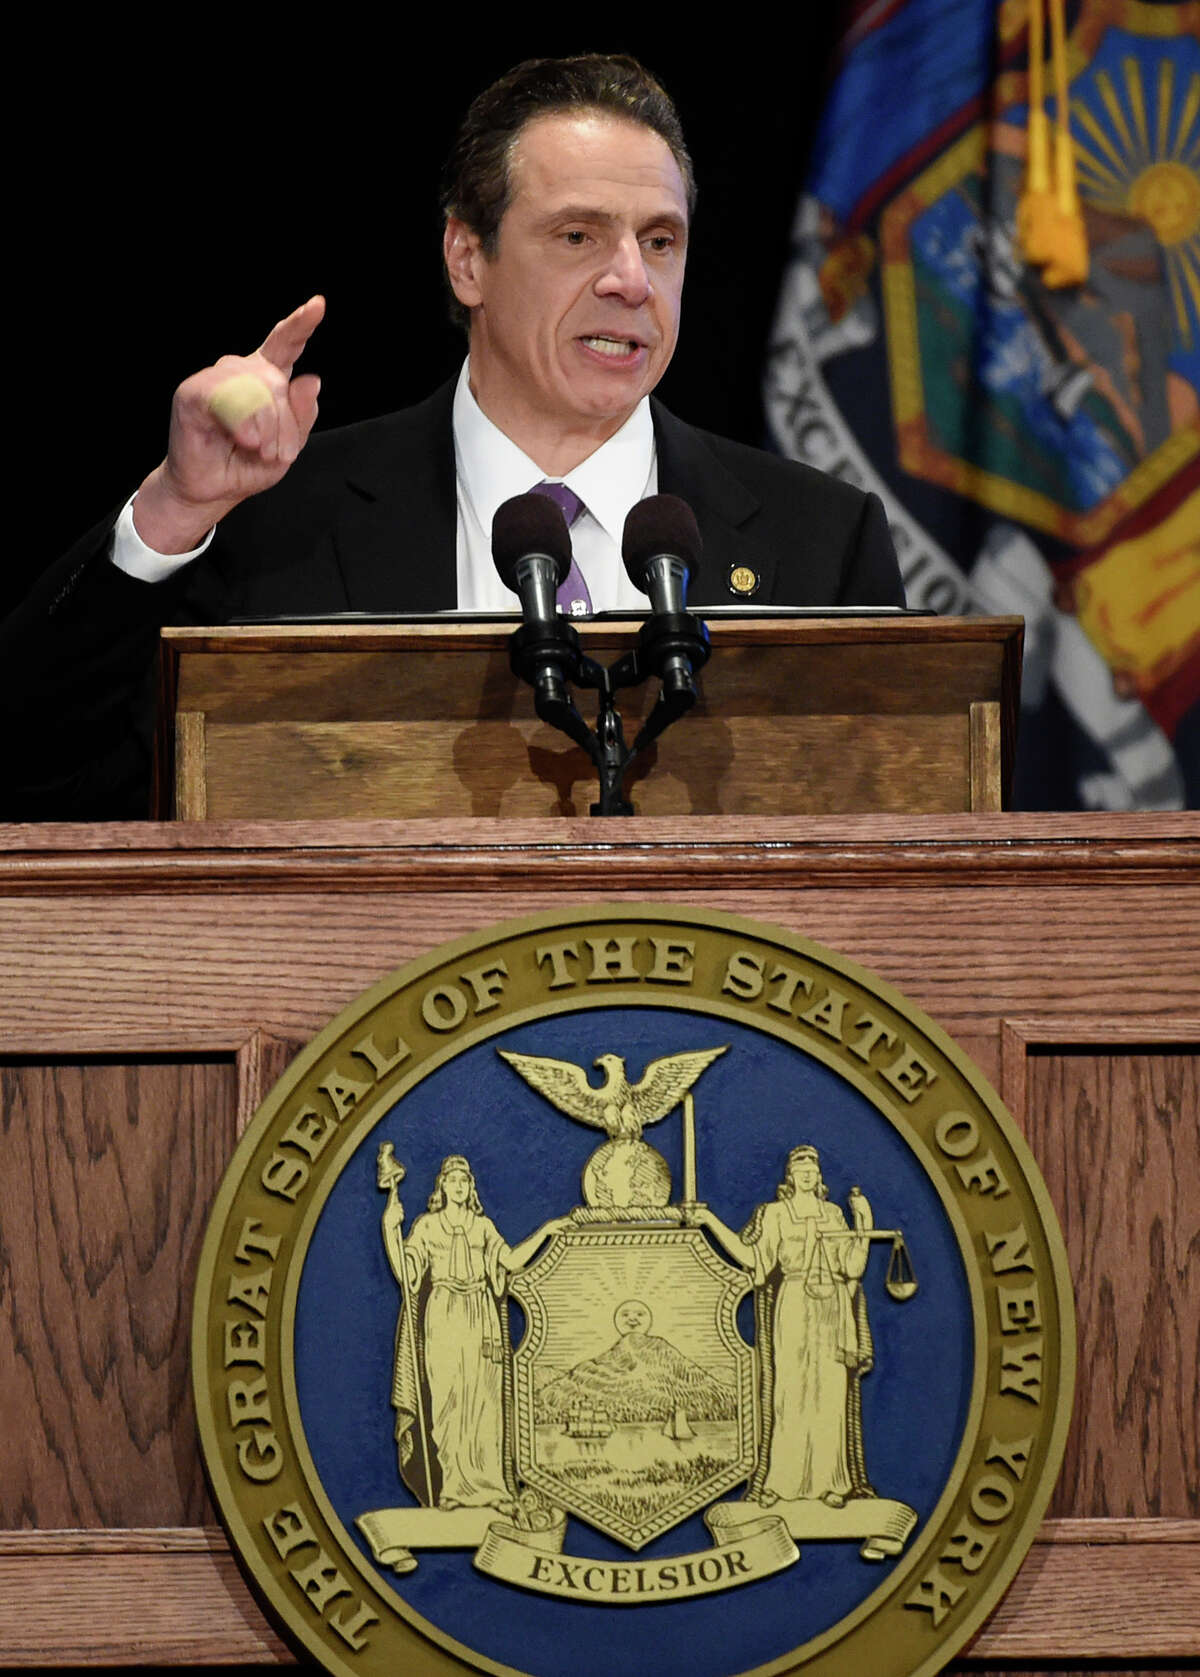 Gov. Andrew Cuomo presents his State of the State message at the Convention Center at the Empire Plaza Jan. 13, in Albany, N.Y. It included a call for ethics reform.(Skip Dickstein/Times Union)